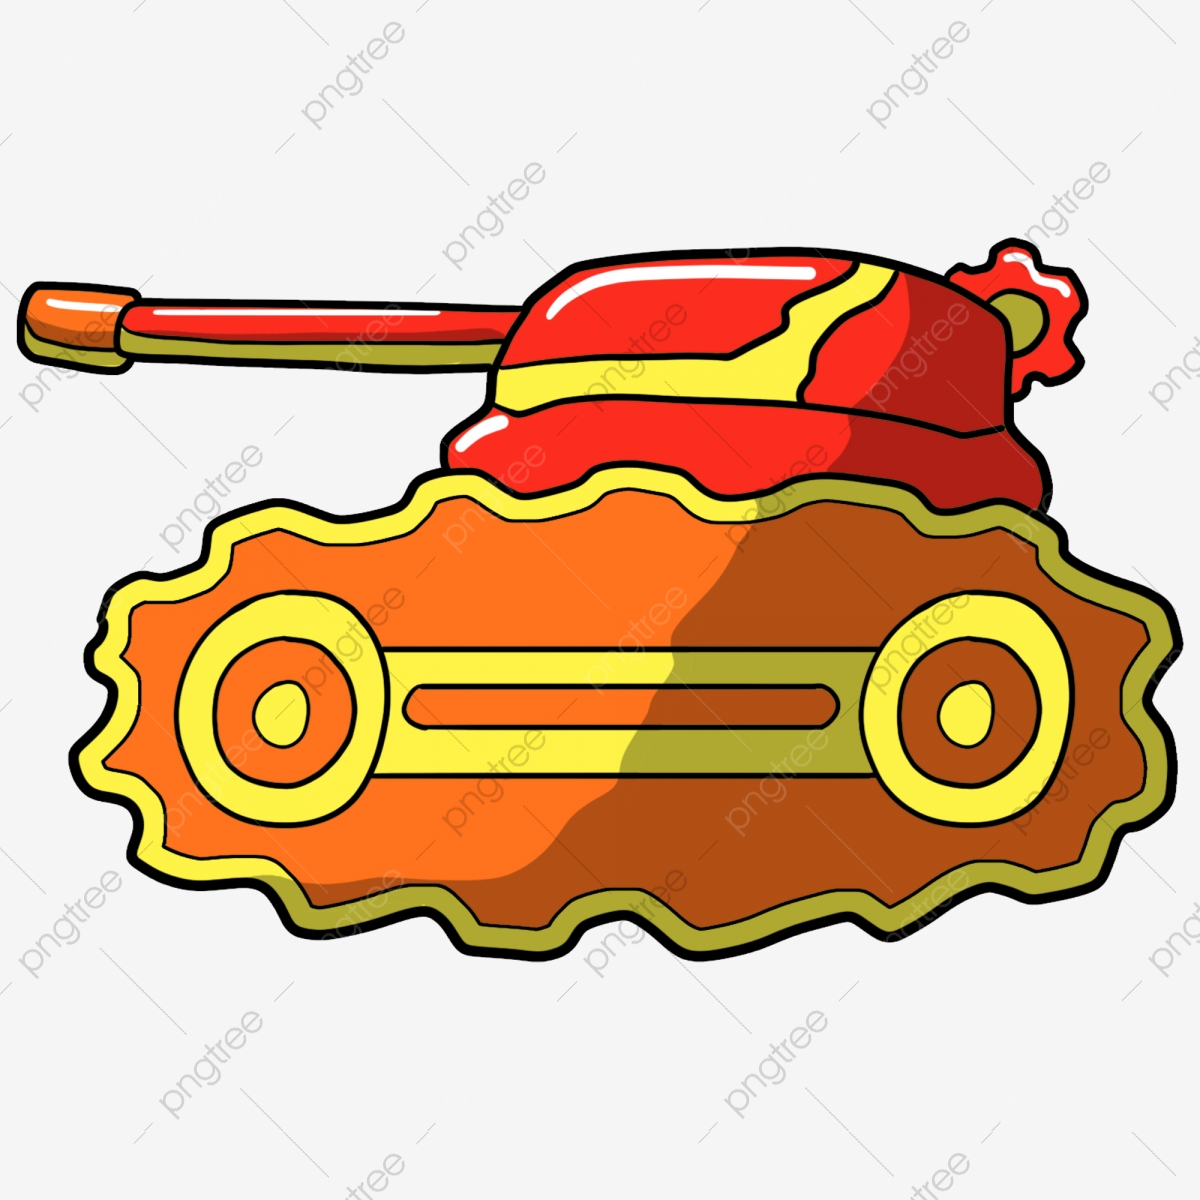 Tank Military Vehicle PNG Transparent Clipart Image And